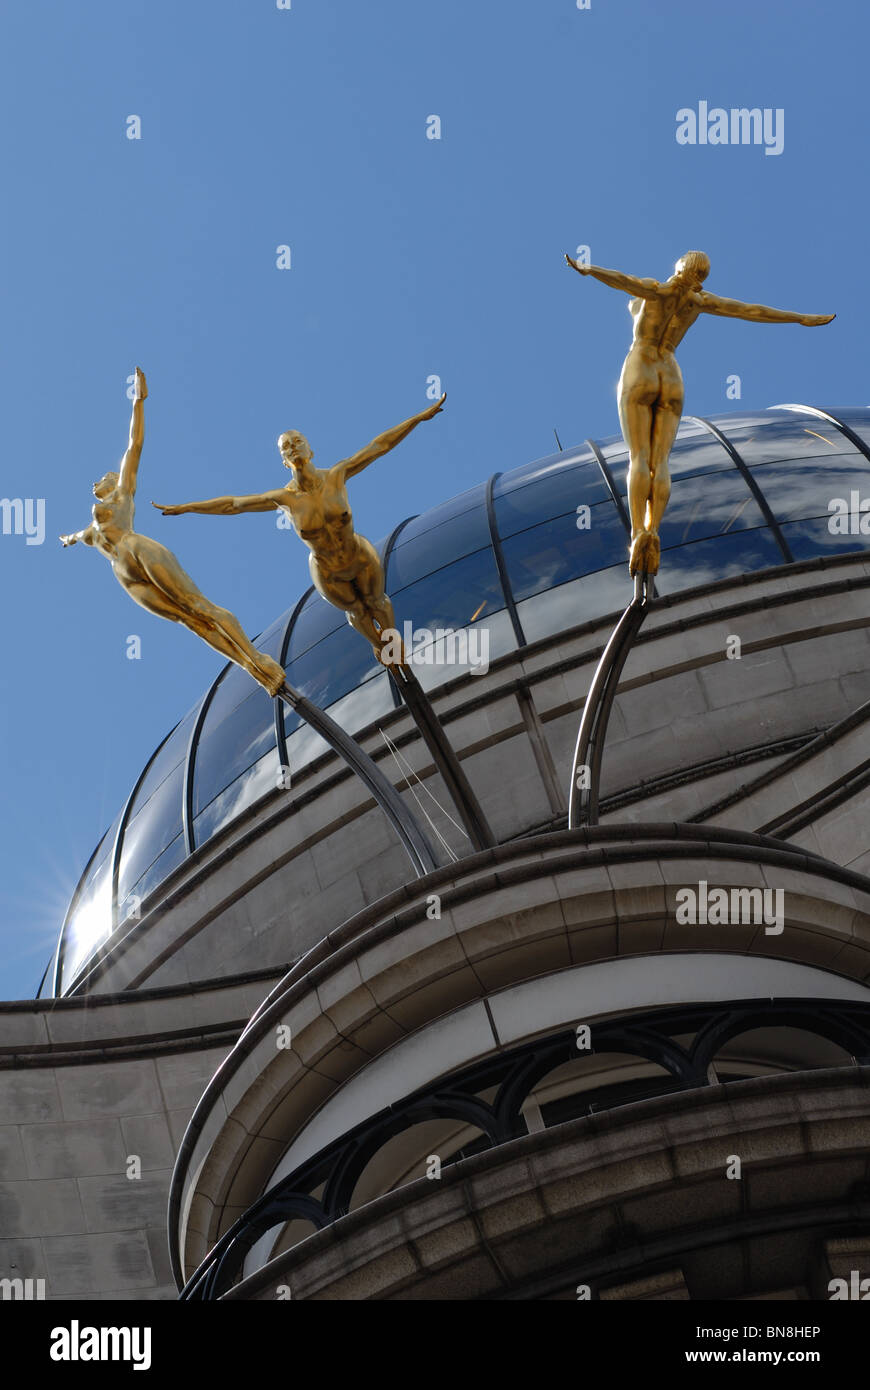 The 'Three synchronized divers' statue on top of the Criterion Building. - Stock Image